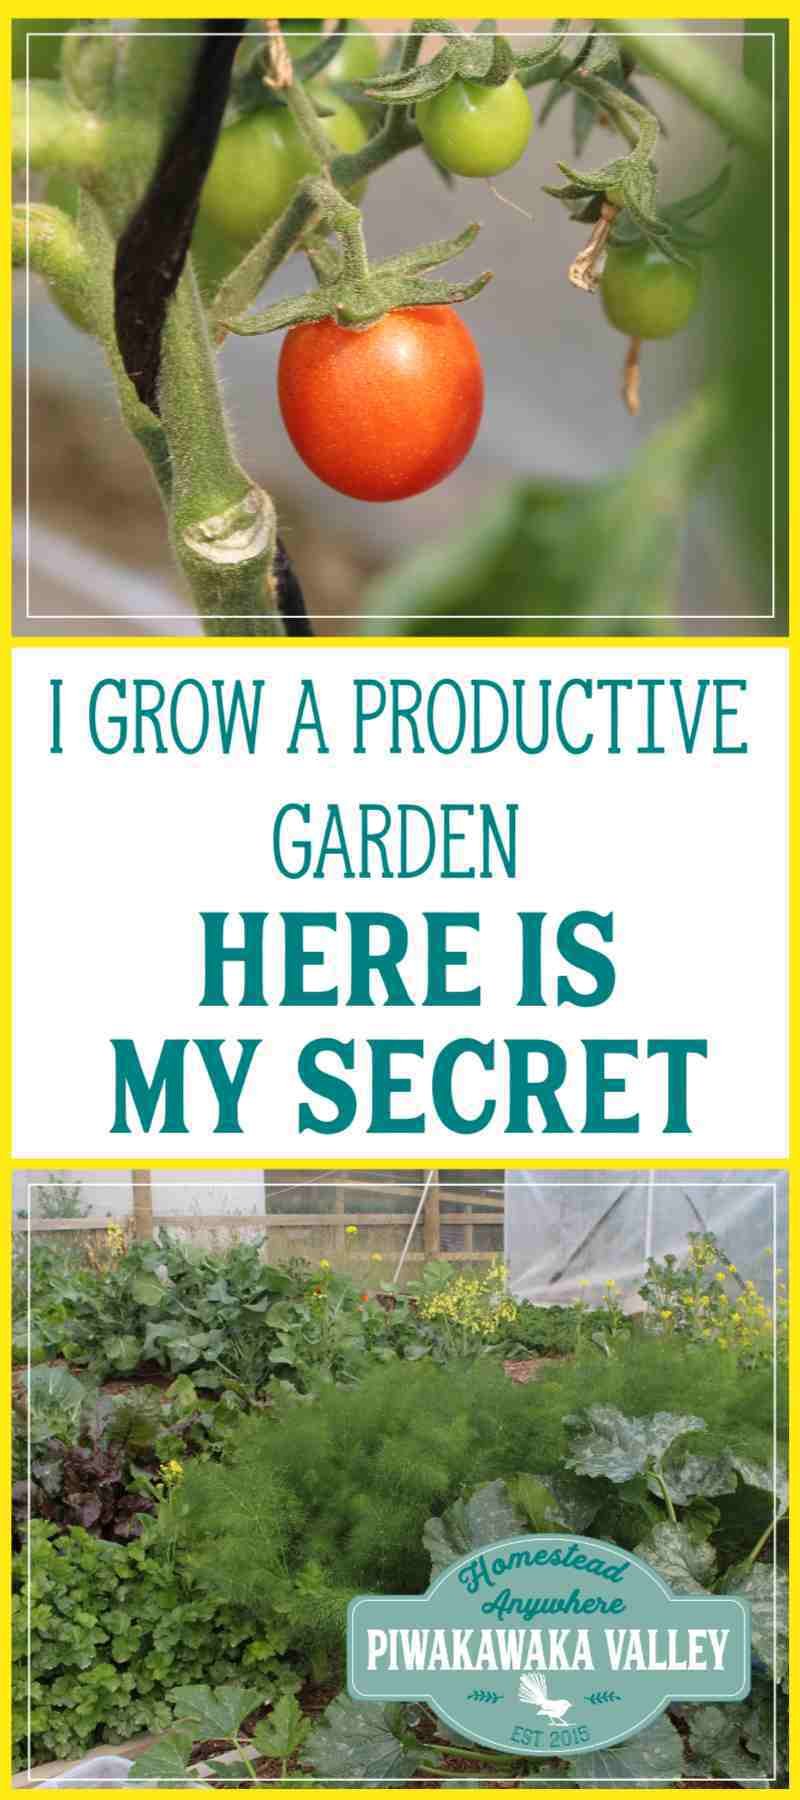 Do you want to know a secret? I successfully grow a very productive garden and feed our family of 5 year round from it in less that 2 hours per week. Let me share my secrets with you. #gardening #beginner #course